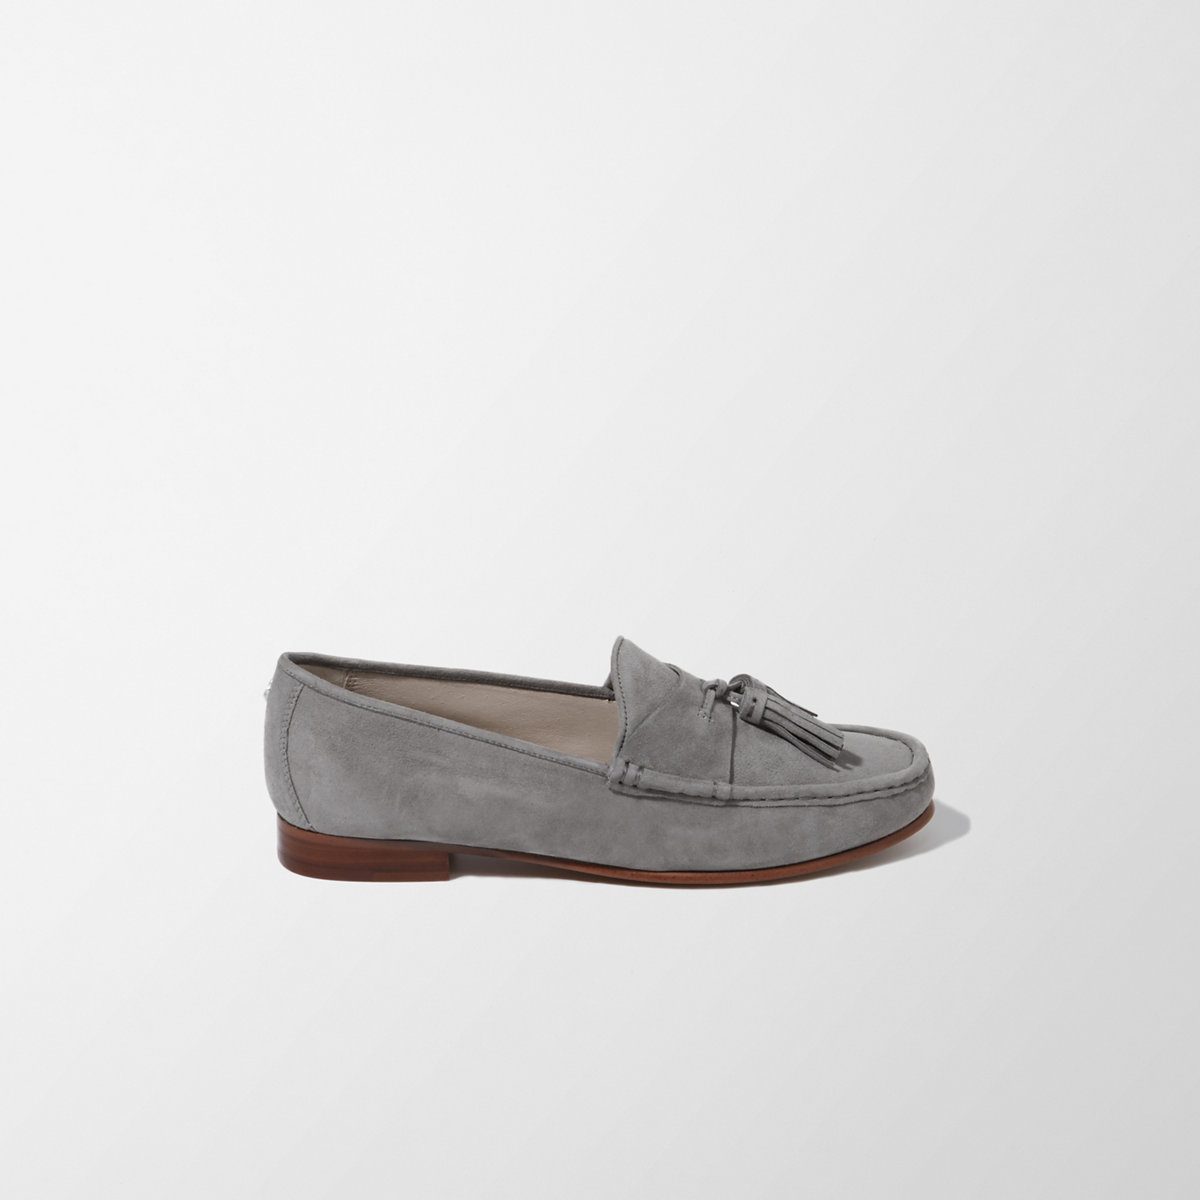 Sam Edelman Therese Loafers